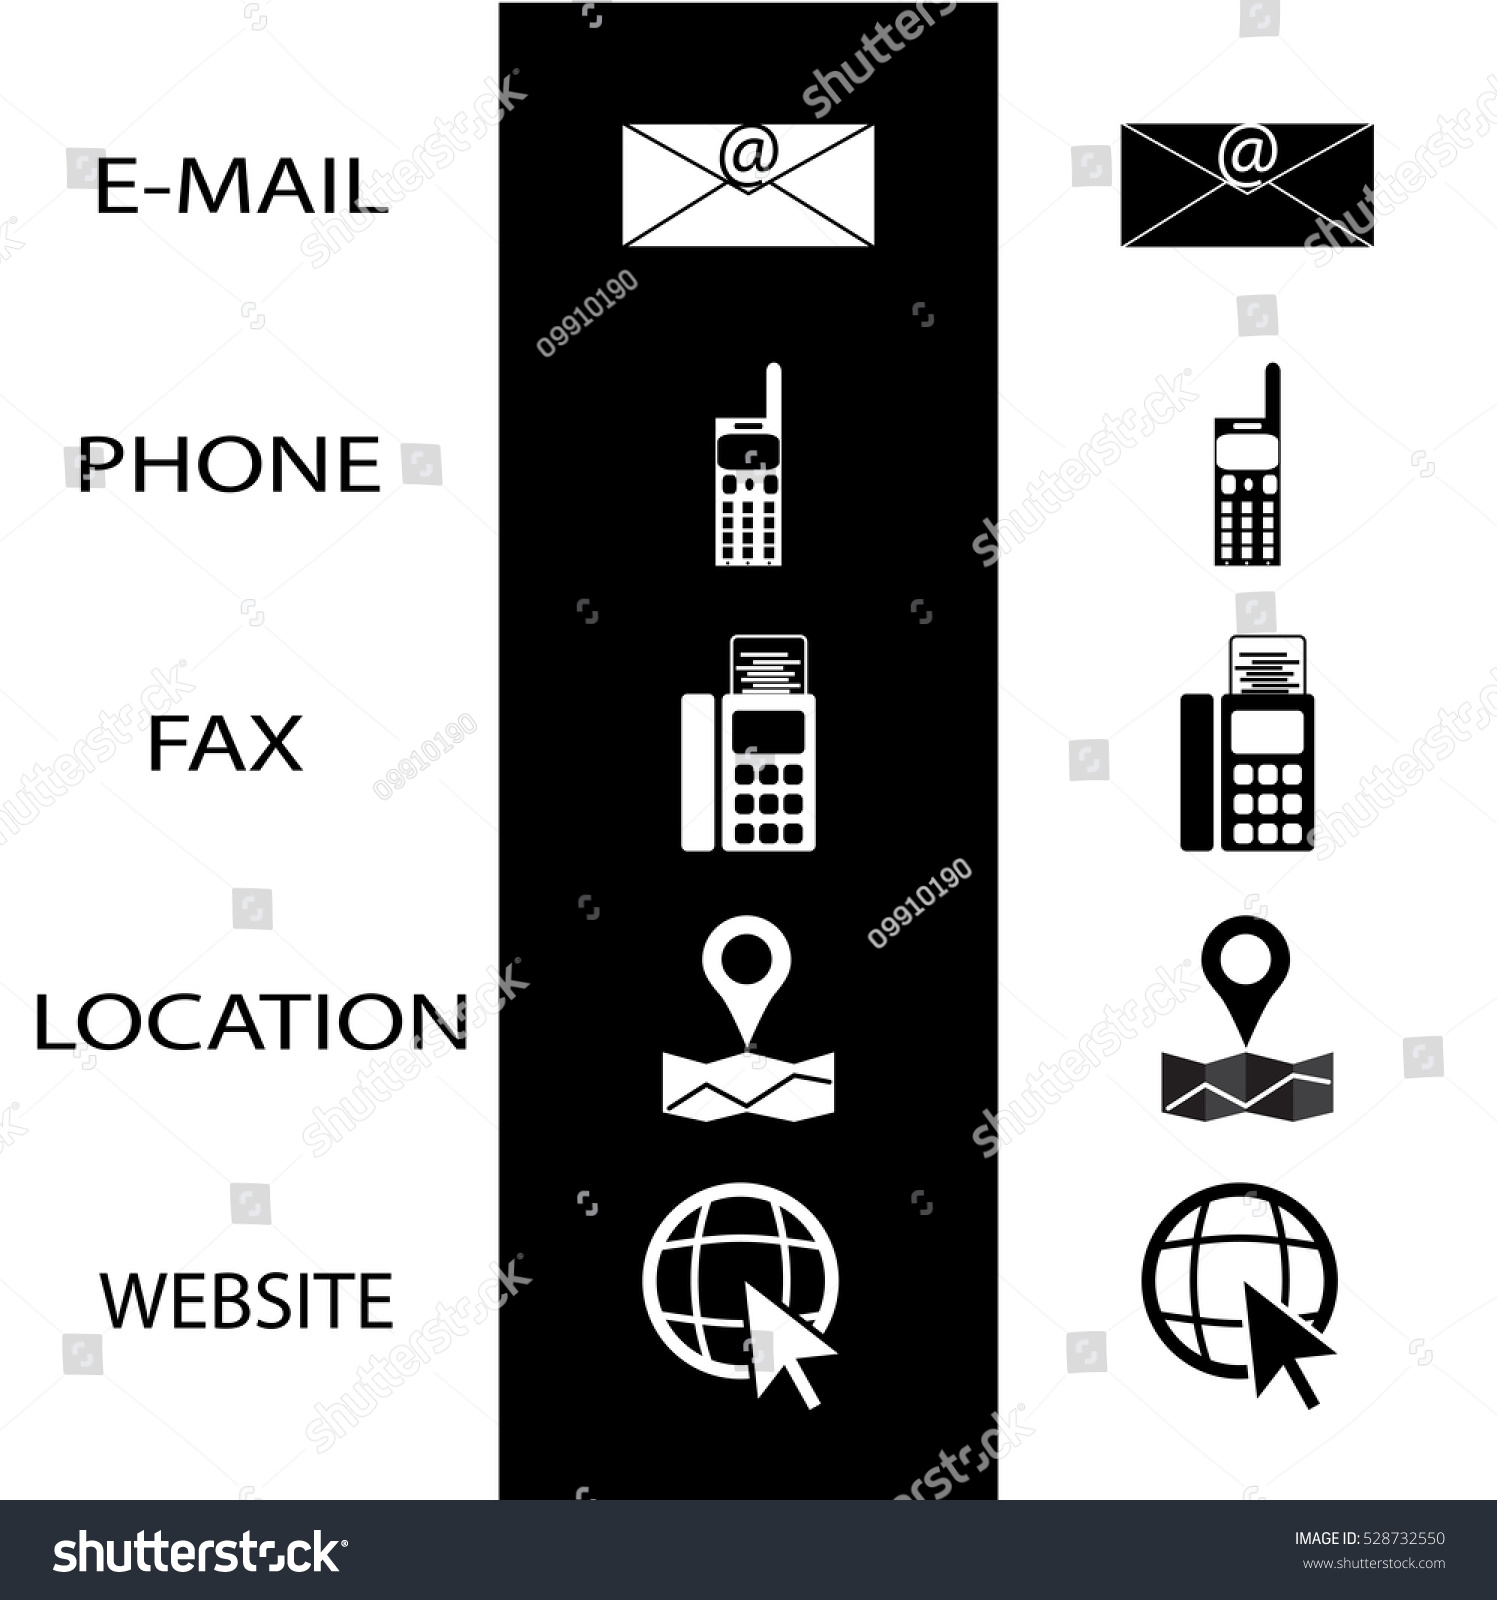 Phone icon for business cards images free business cards business card phone icon image collections free business cards icons conctact business card phone fax stock magicingreecefo Images